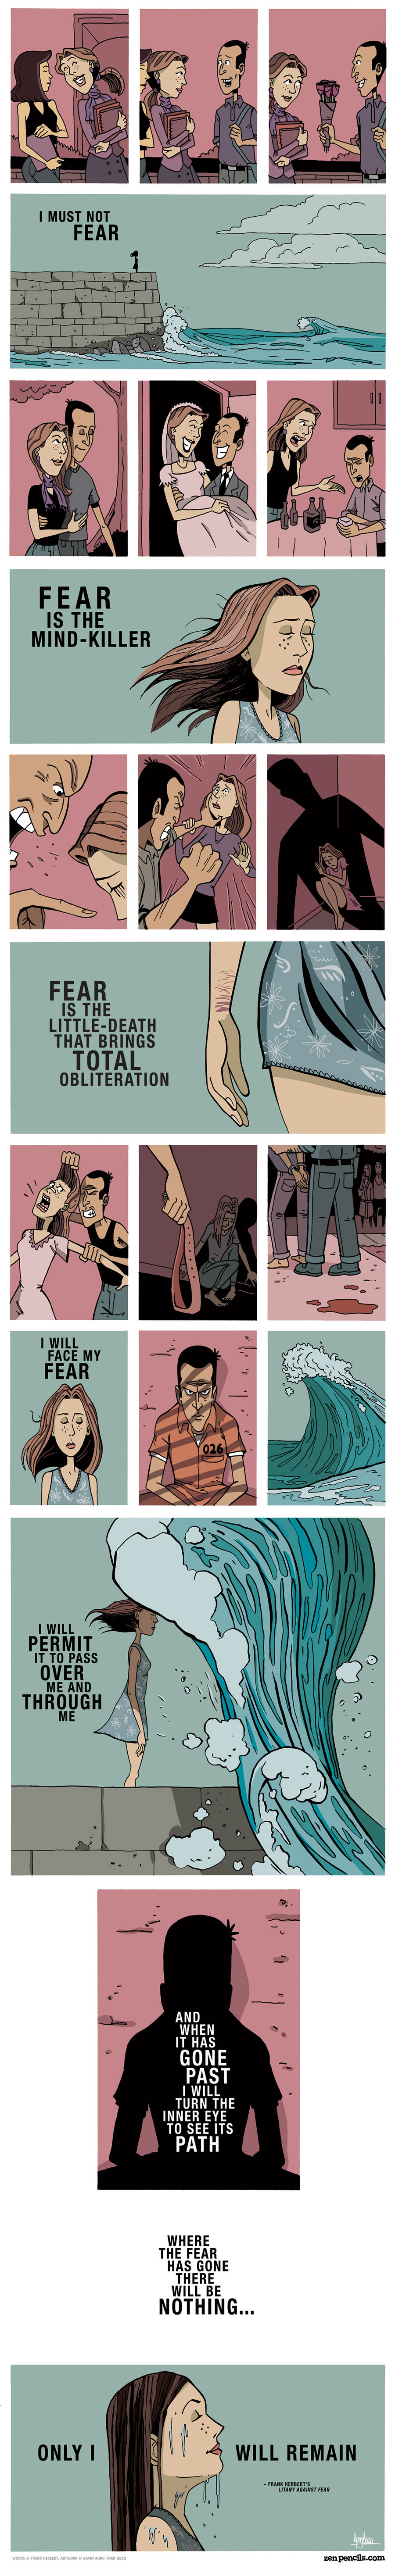 Zen Pencils Comic Strip for February 16, 2015